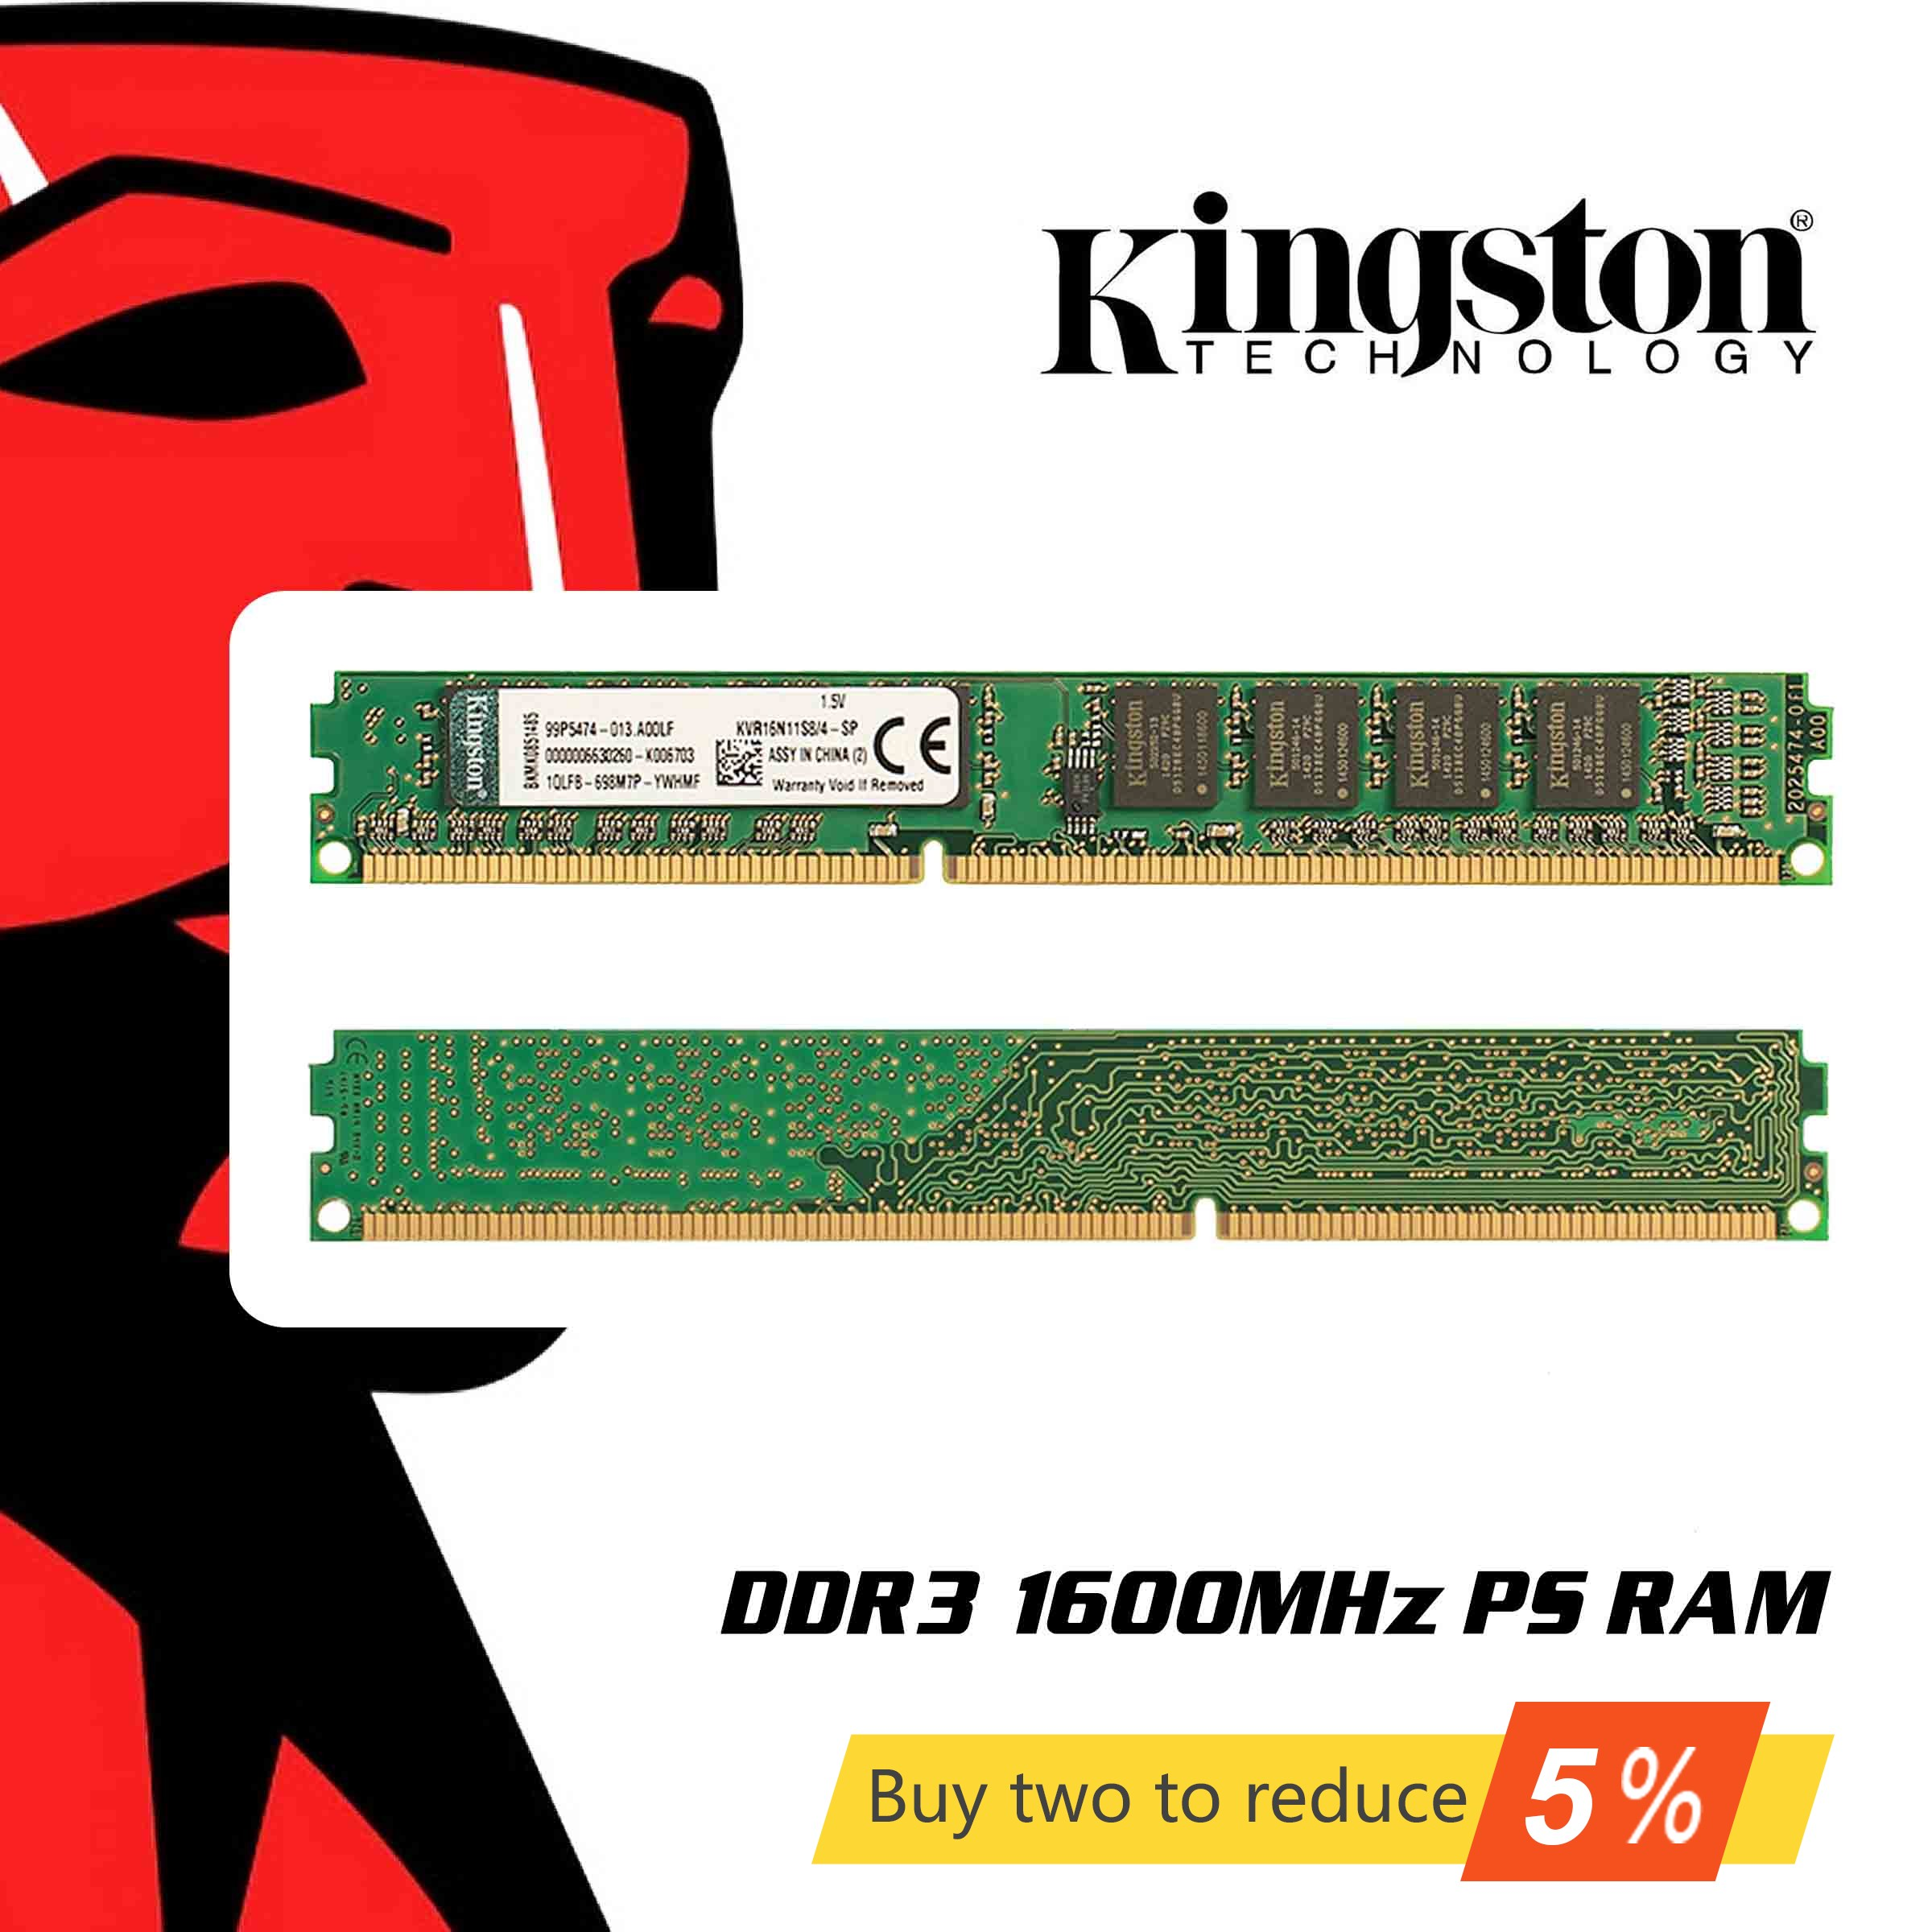 Original <font><b>Kingston</b></font> <font><b>RAM</b></font> Speicher <font><b>DDR3</b></font> 1600MHZ 4GB 8GB Memoria <font><b>RAMs</b></font> 1600 MHz 8 Gigabyte Gigs Stick für desktop Laptop PC Notebook image